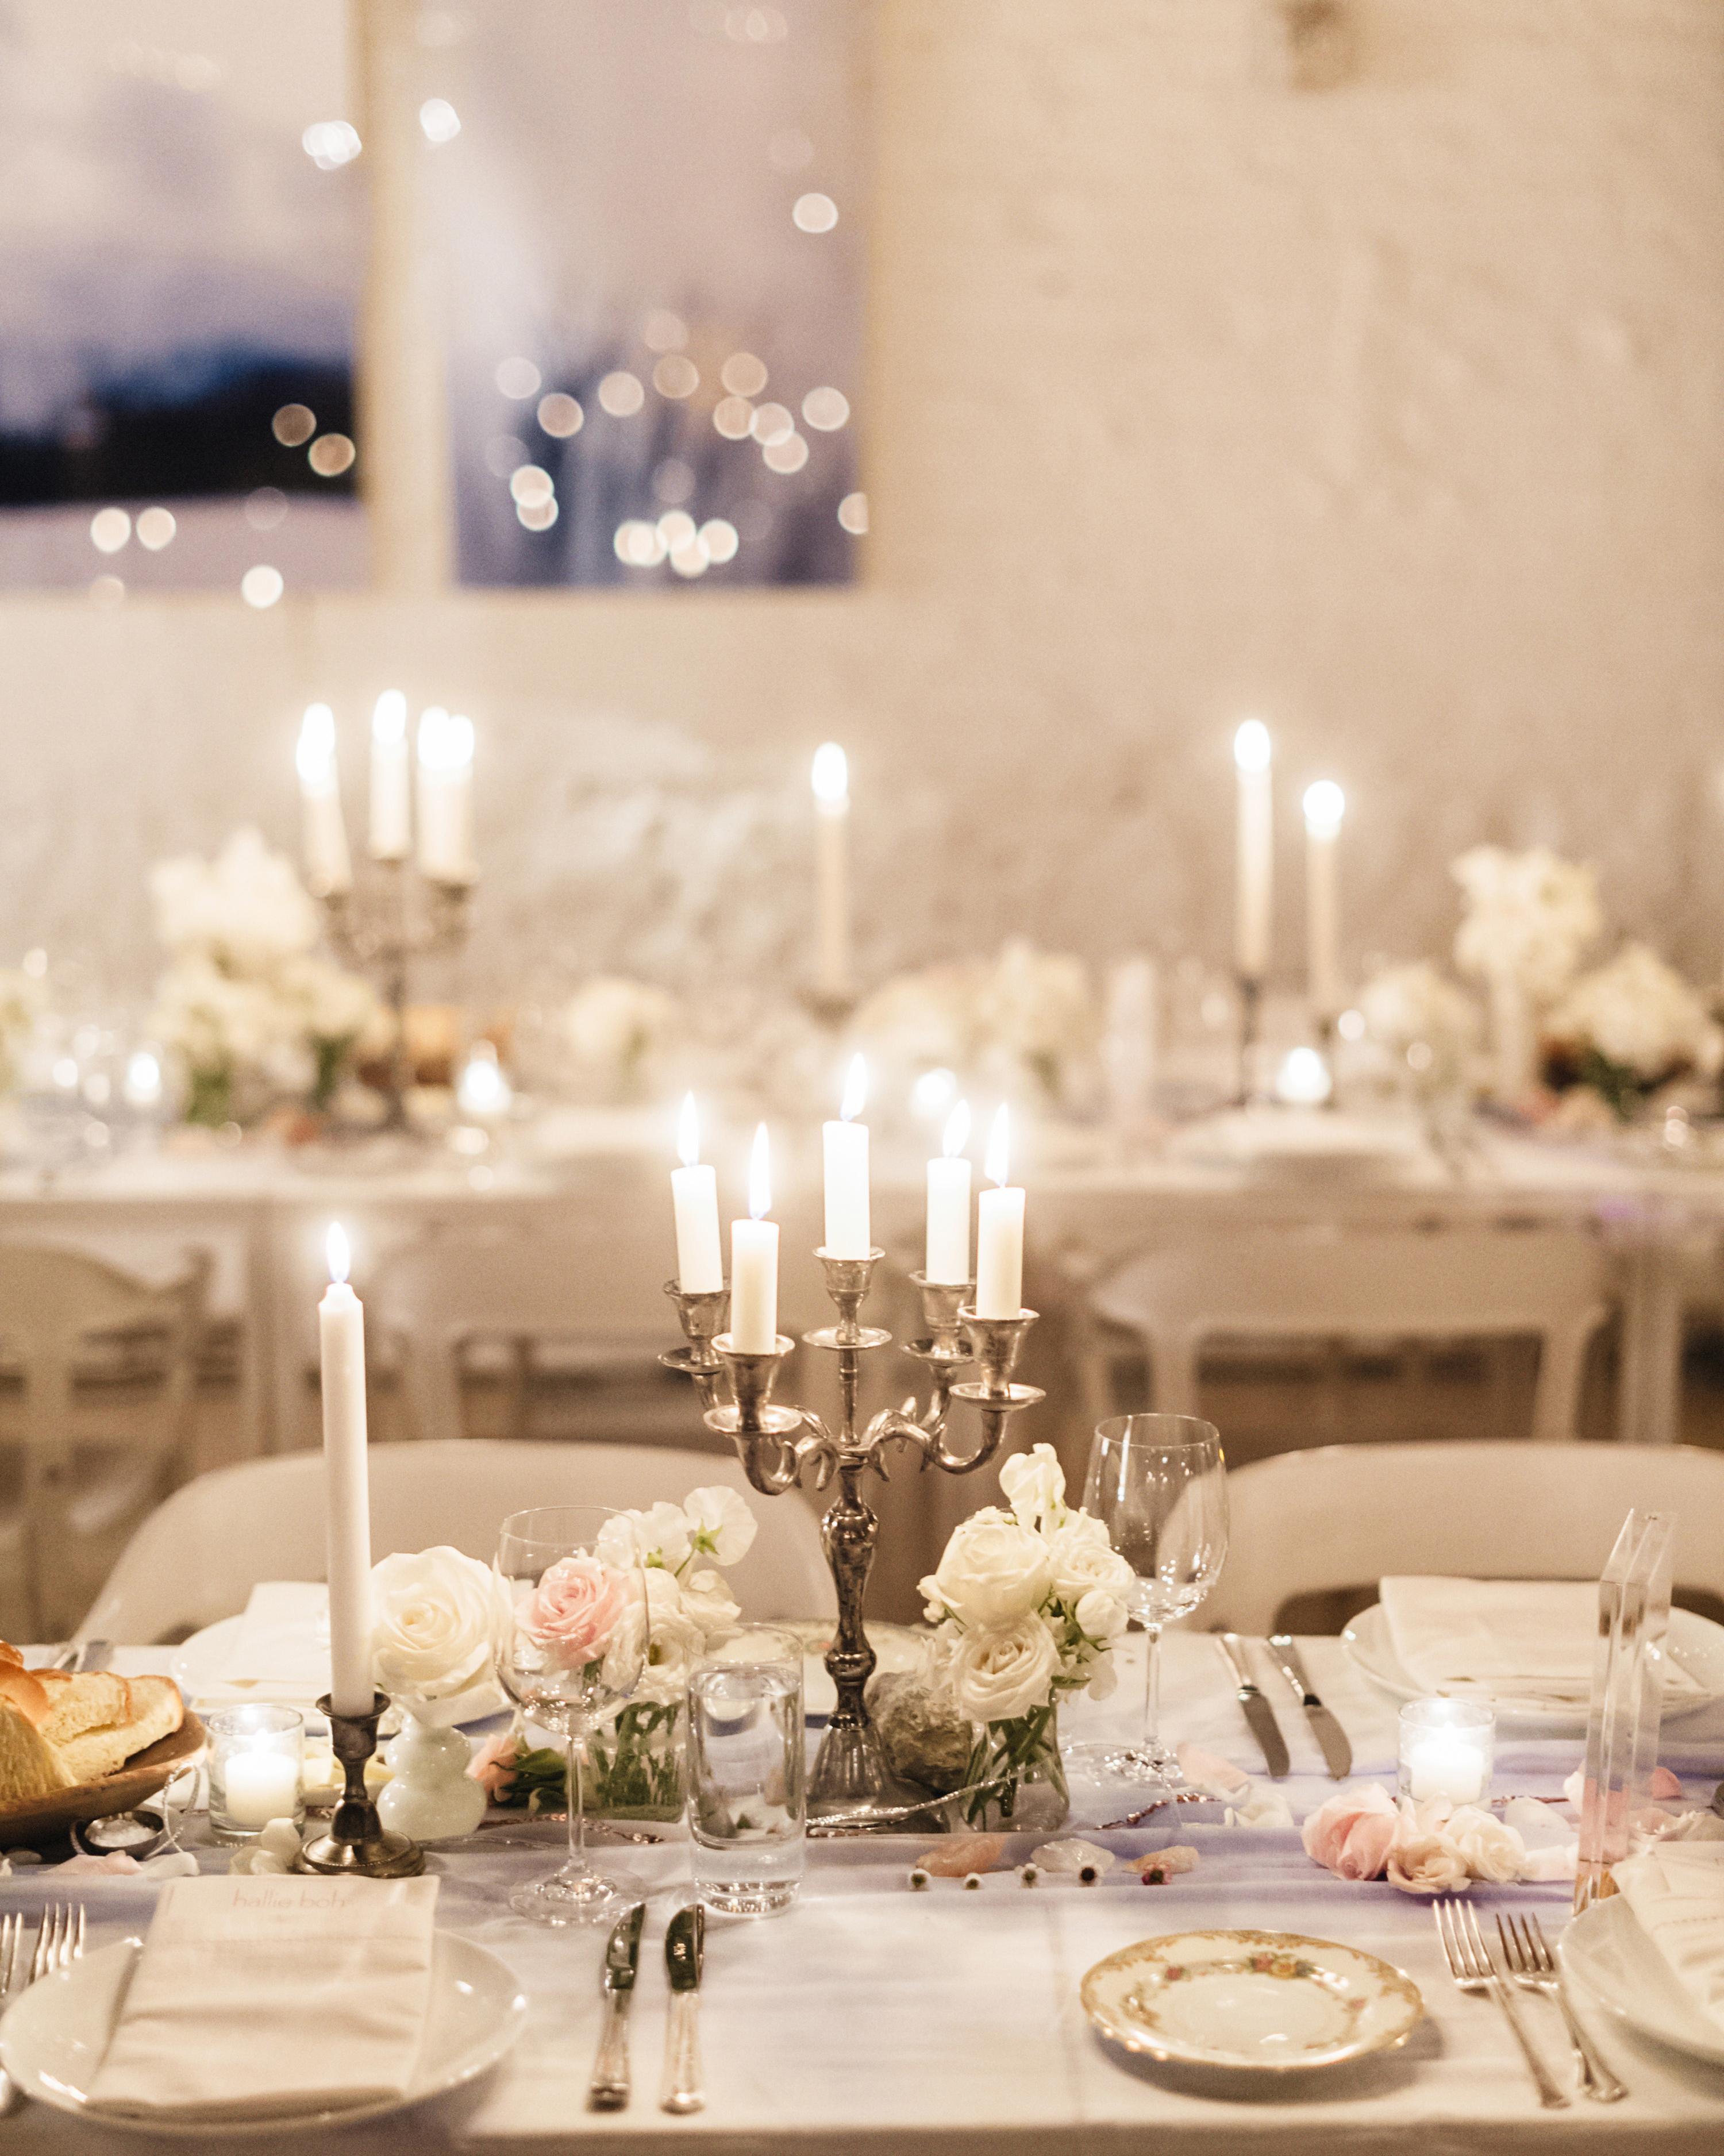 lori-jan-wedding-table-01163-s112305-1215.jpg